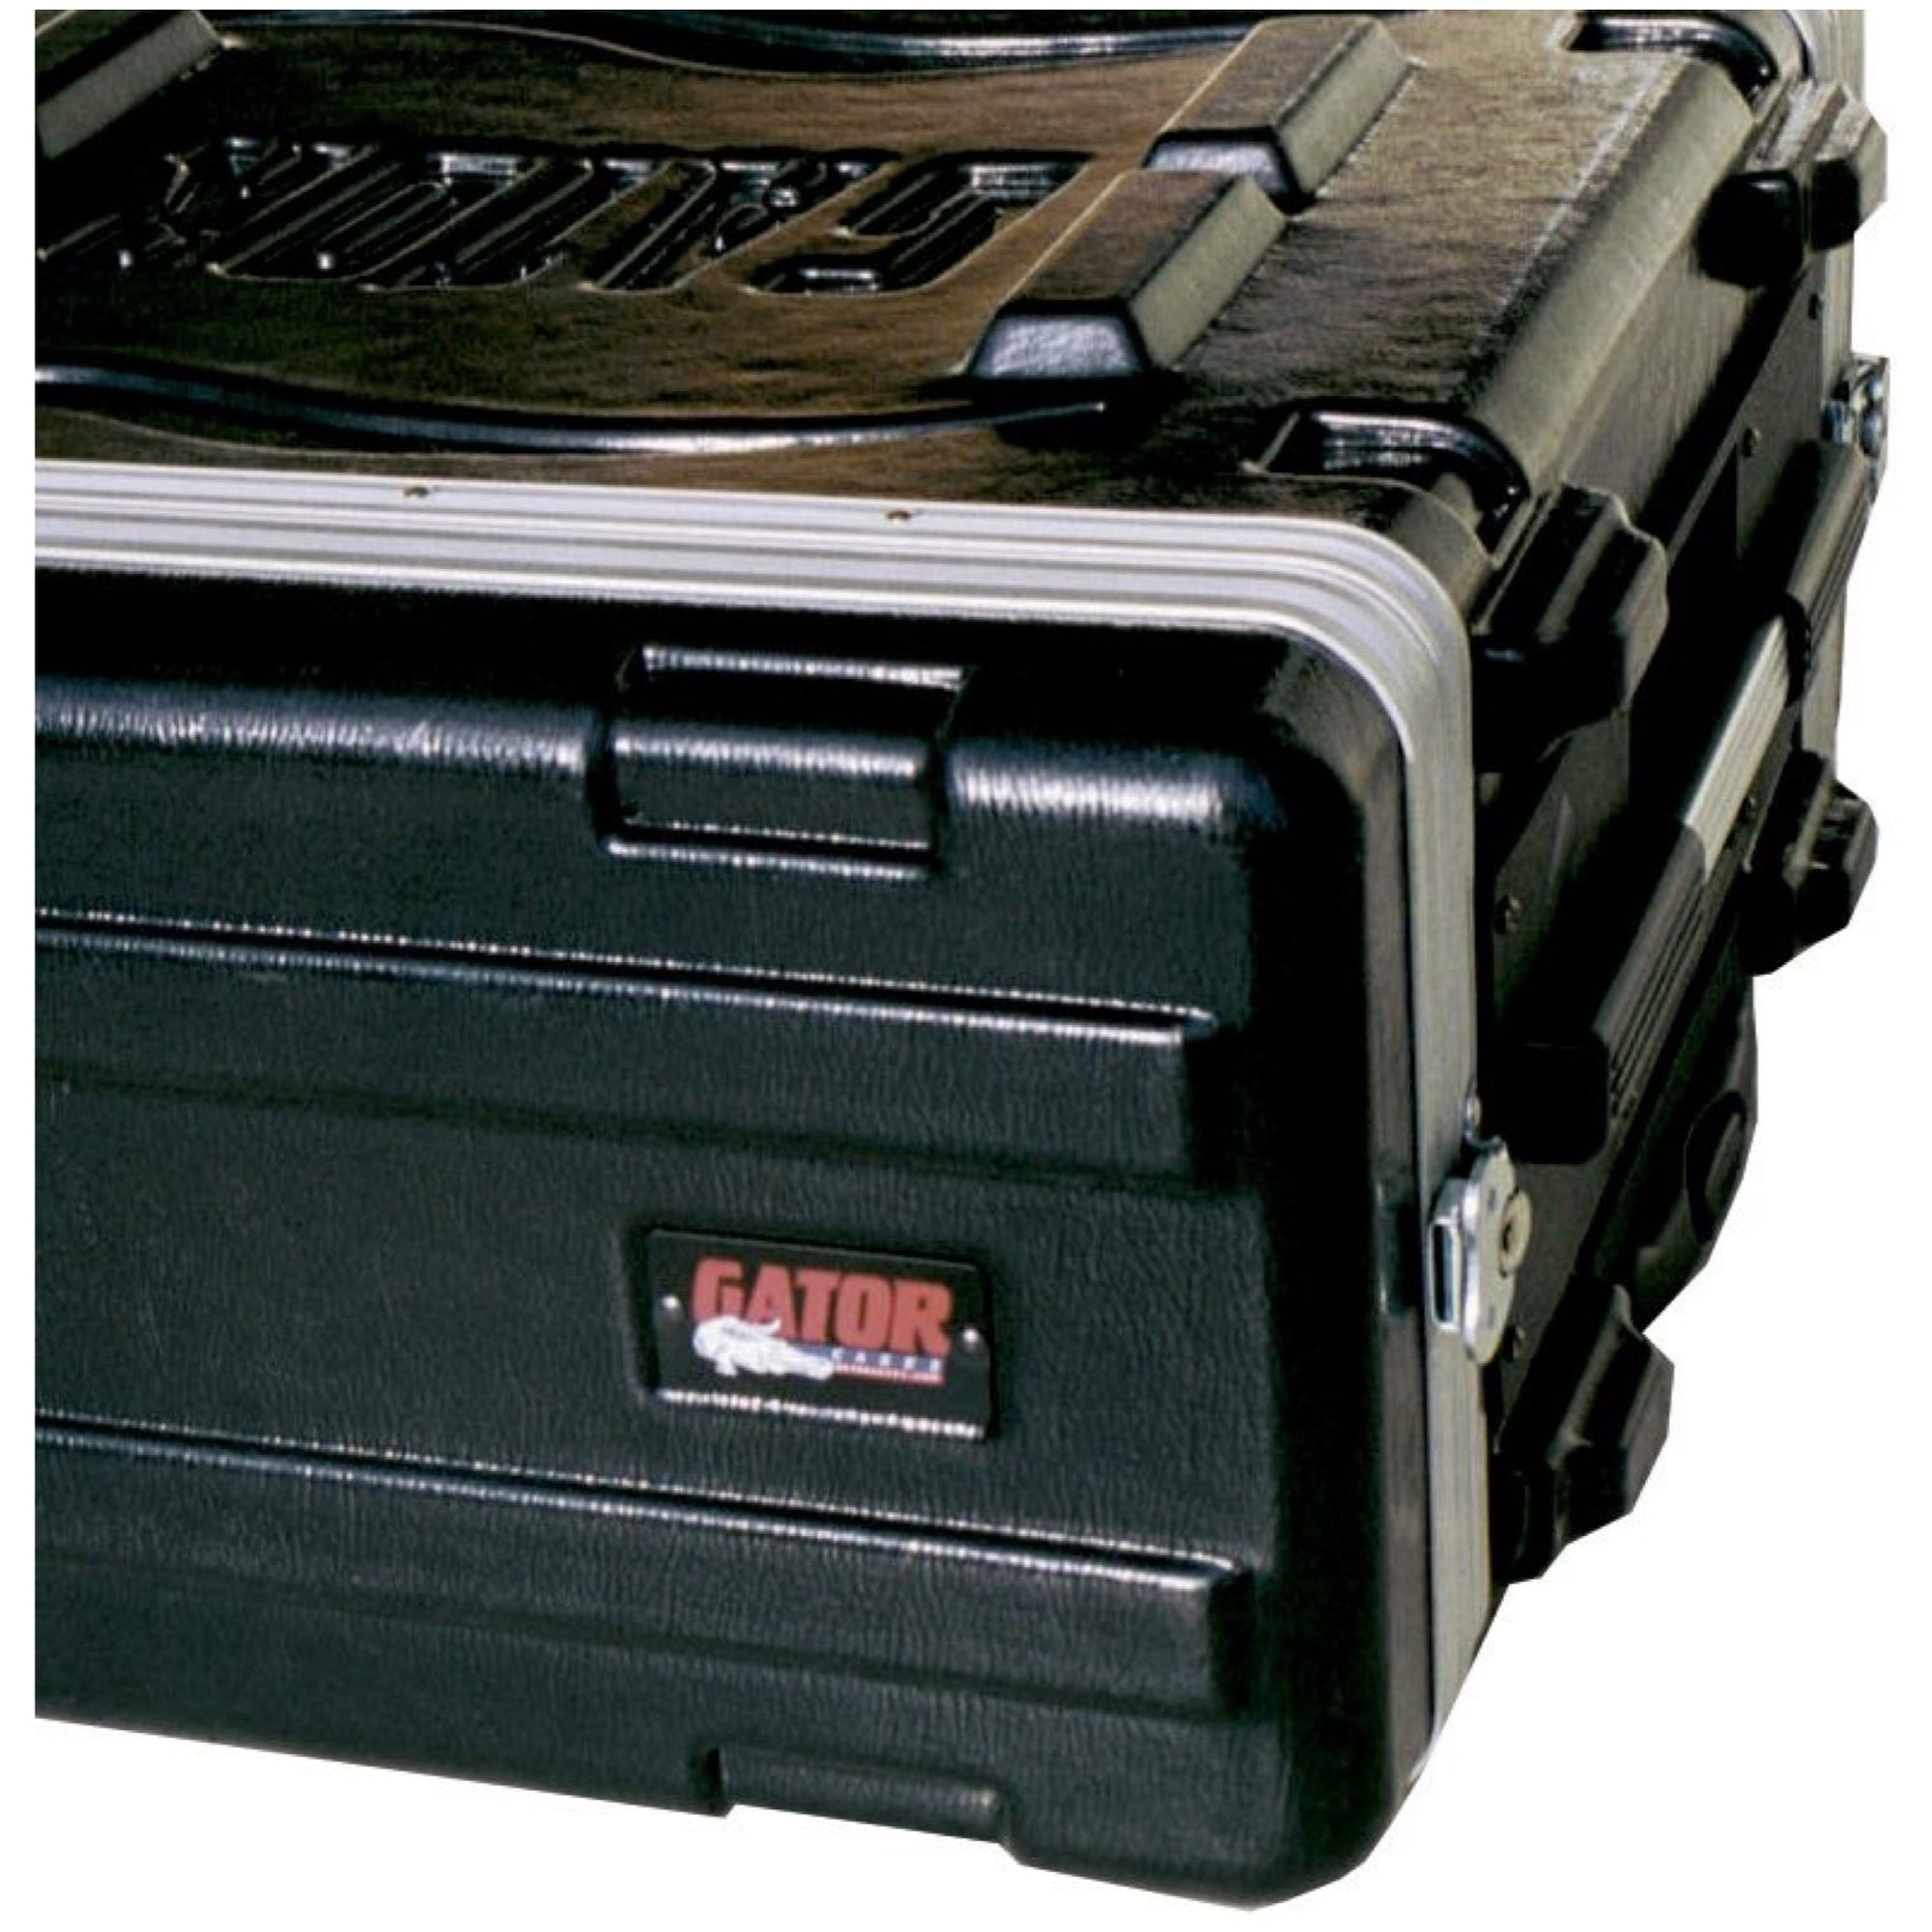 Gator Deluxe 19 Inch Rack Case, 6 Space